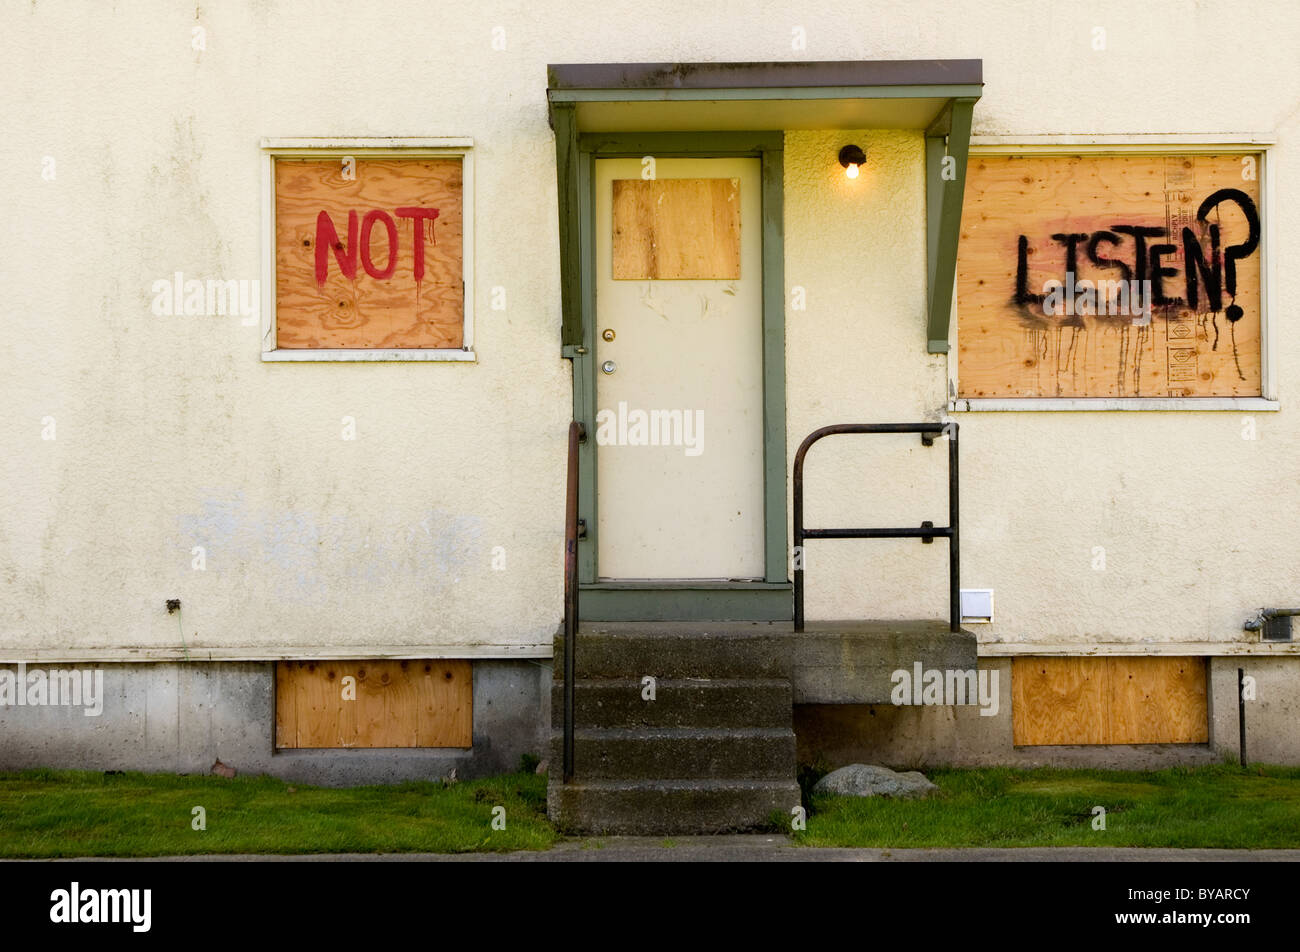 Boarded up dilapidated townhouse complex - Stock Image